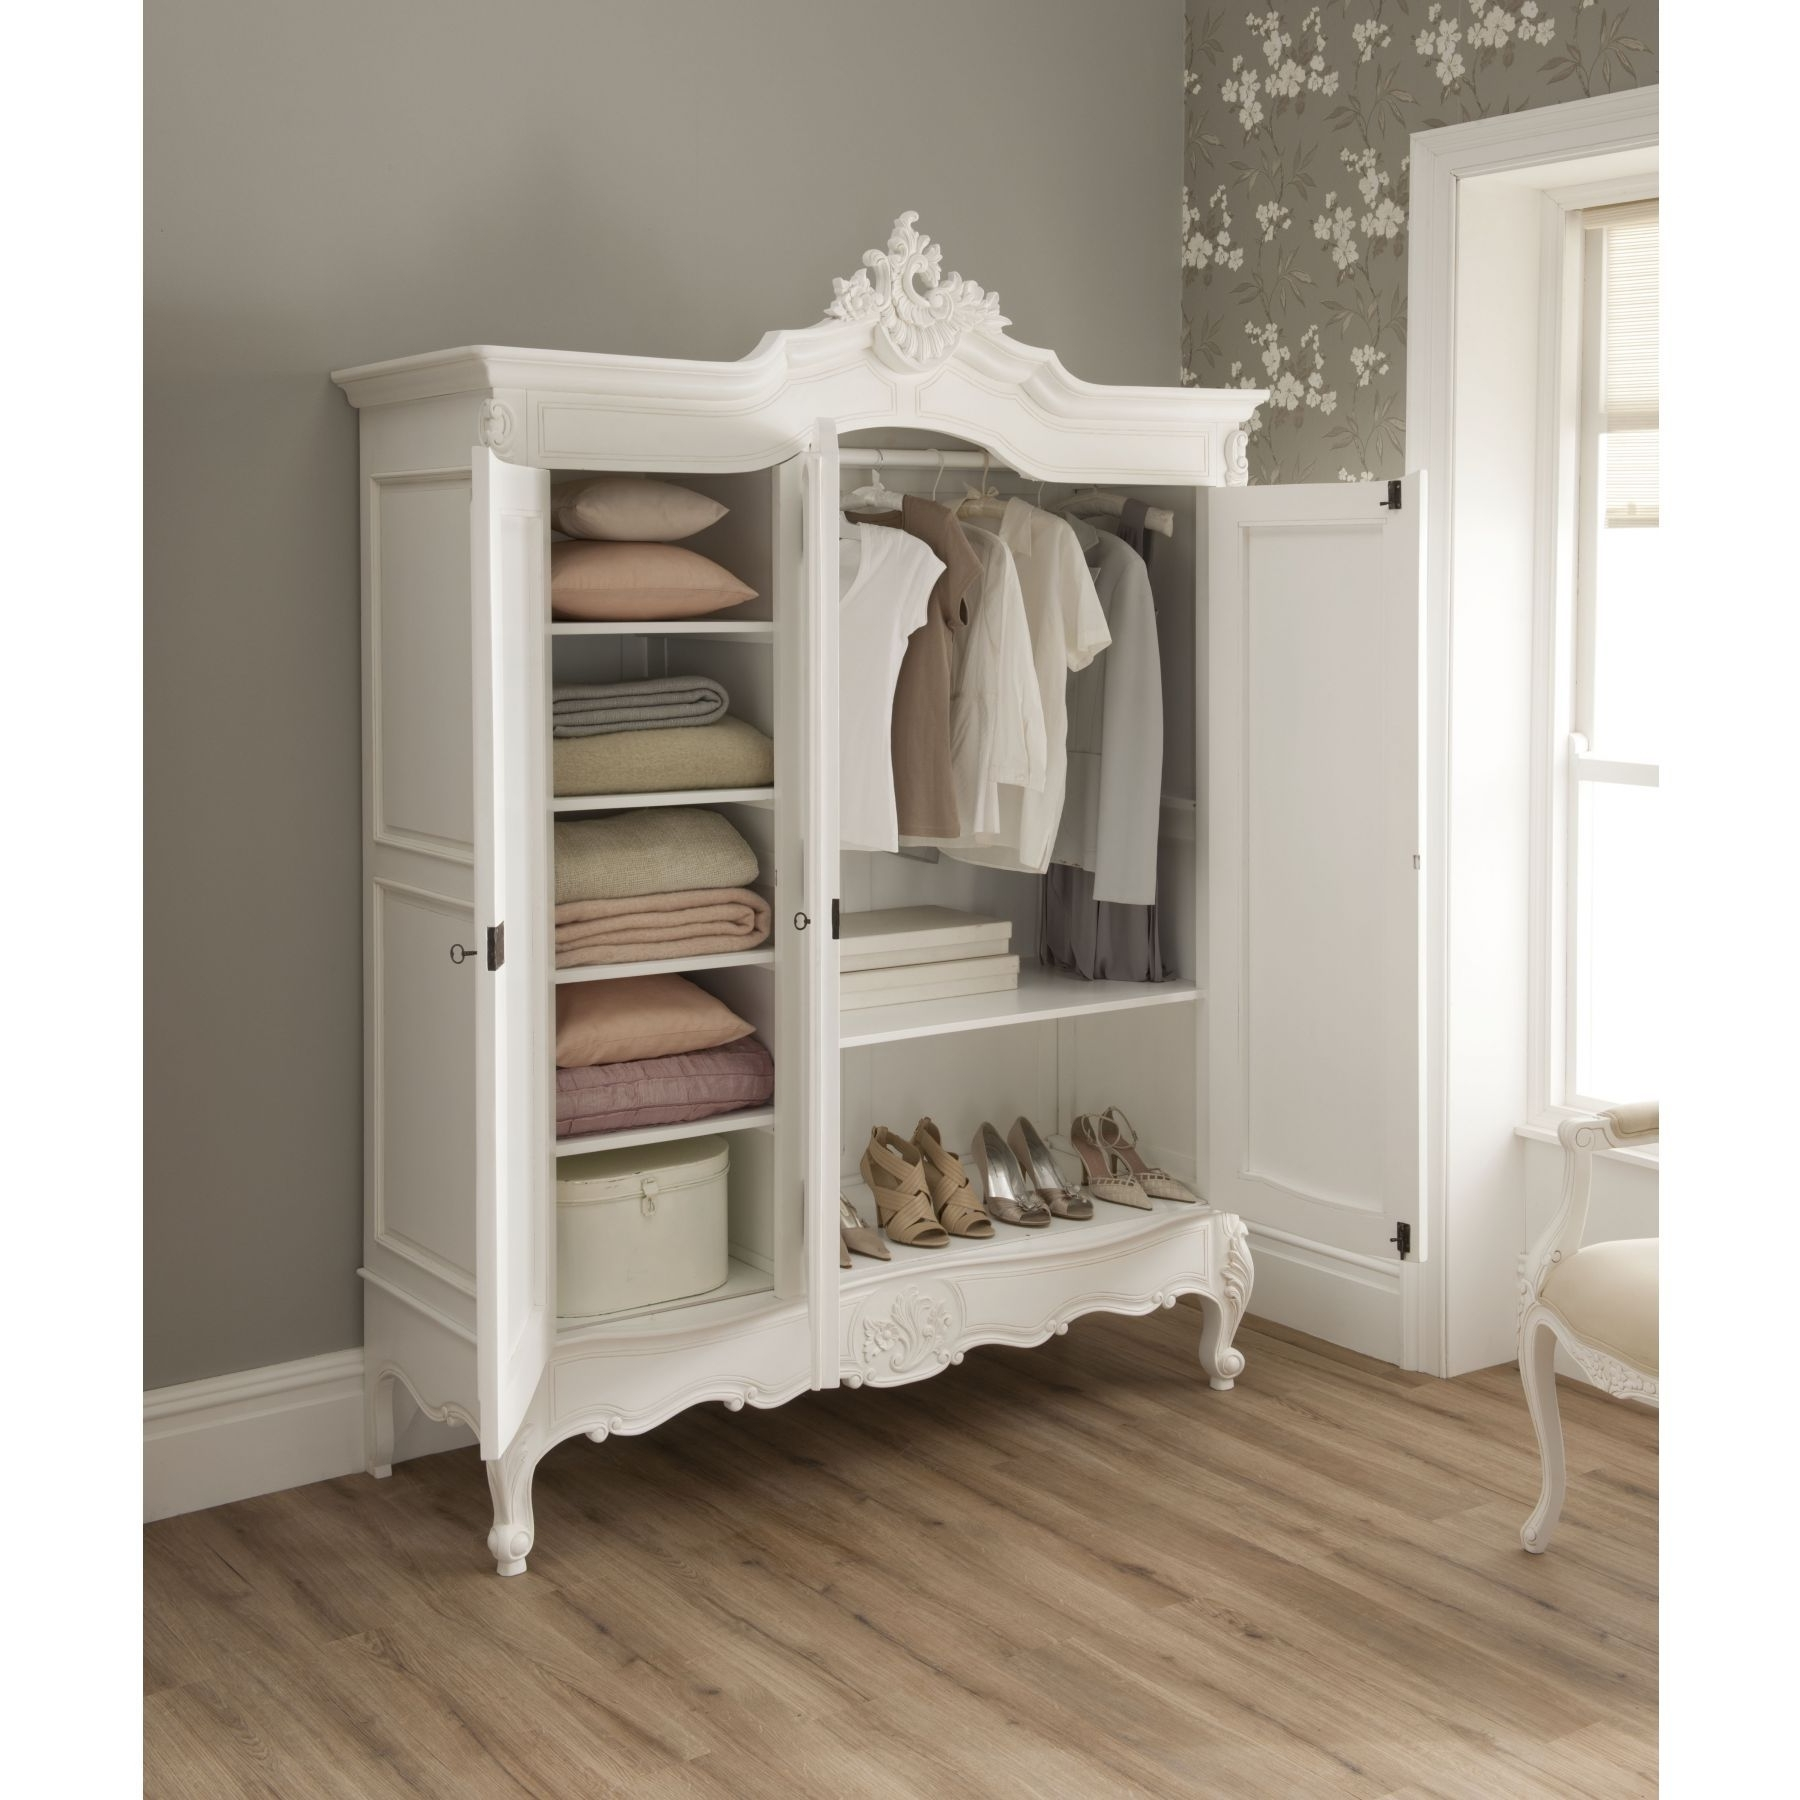 A Wardrobe Is The Perfect Addition To A Baby's Room To Stylishly In Current Antique White Wardrobes (View 7 of 15)